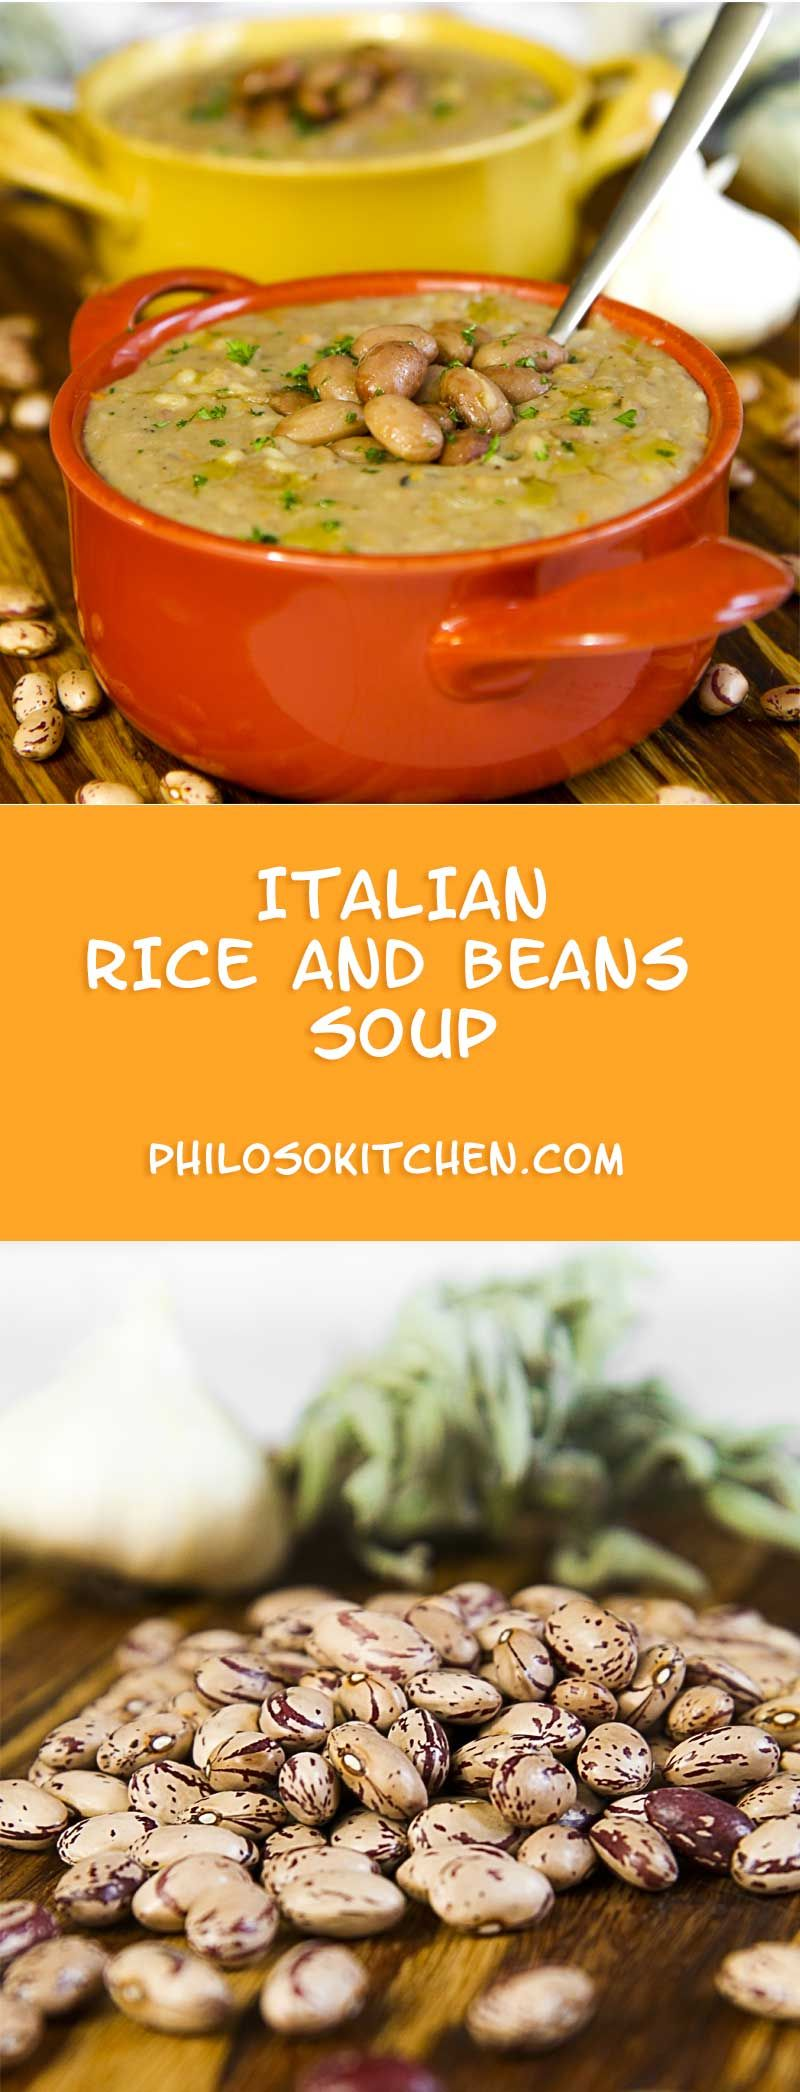 Italian rice and beans soup - a fall delight! Try this healthy autumnal cream soup, it will warm you during the coldest nights! ---- recipe, dinner, thanksgiving, crockpot,dinner recipes, vegan, vegetarian